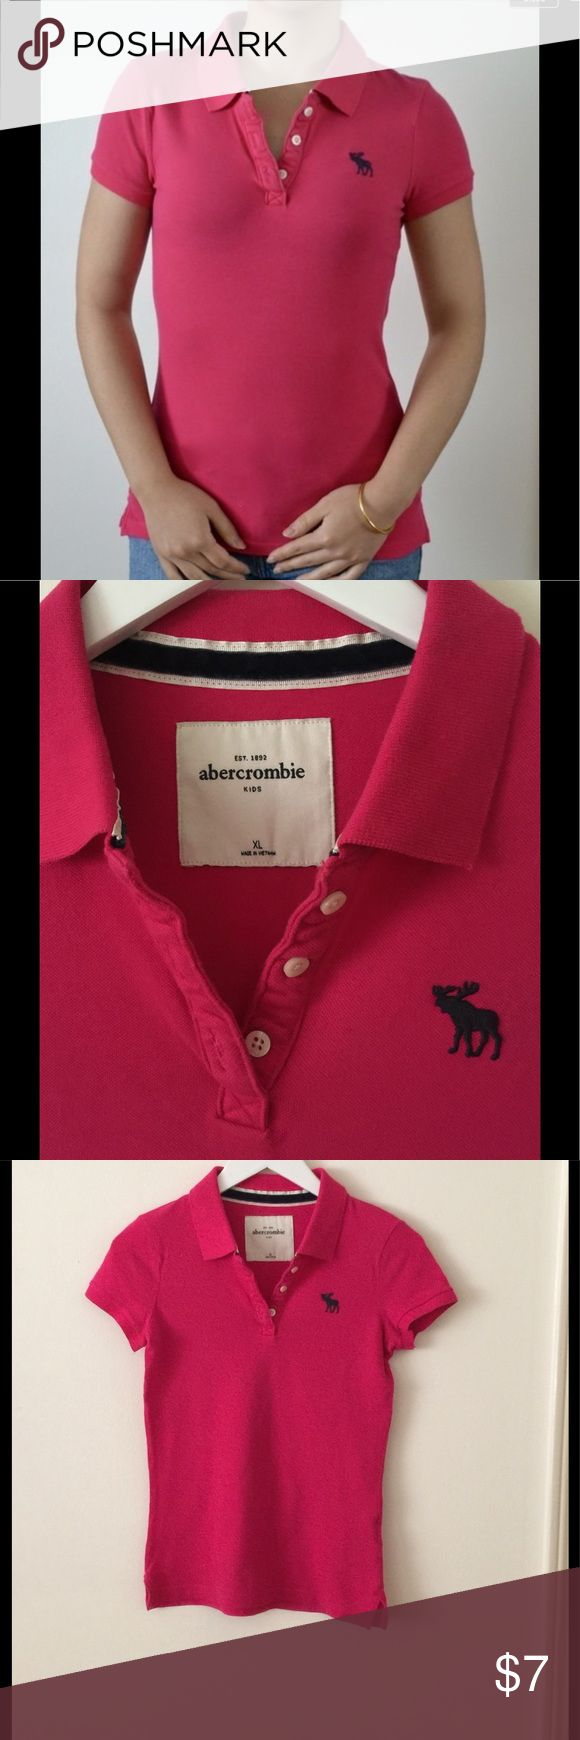 Abercrombie Girls bright pink polo, very good cond Abercrombie Girls  bright pink polo, size XL,  very good condition Abercombie Kids Shirts & Tops Polos